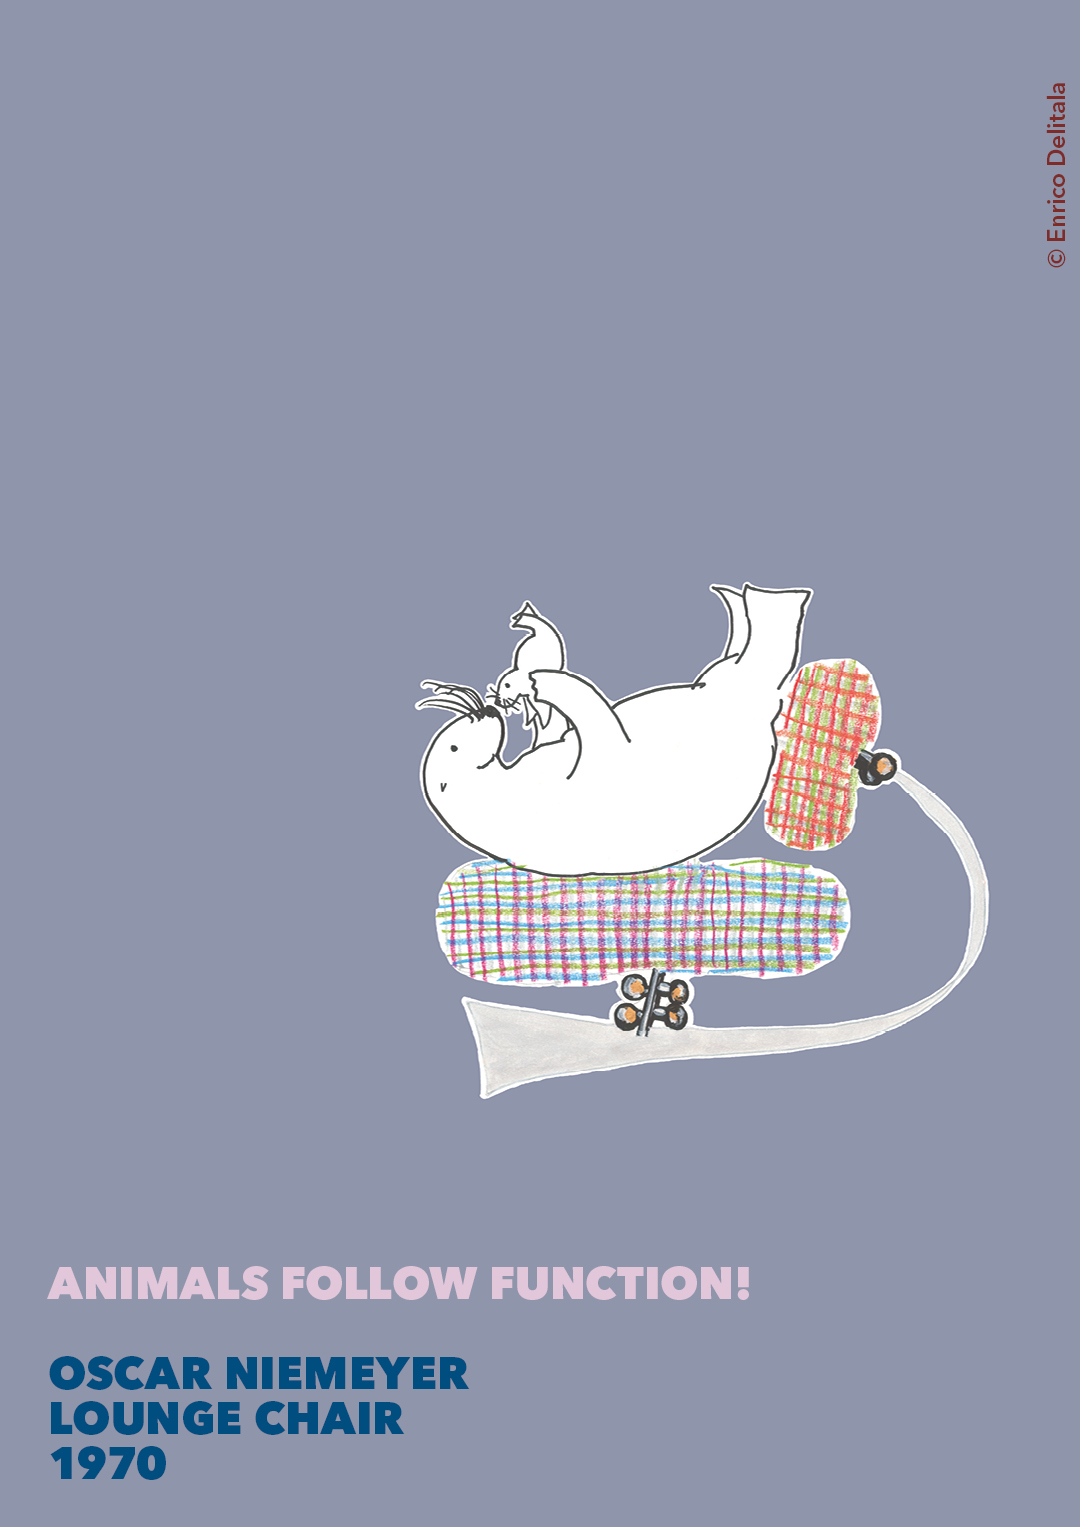 Otaria: Enrico Delitala illustrator animals follow function form follows function Oscar Niemeyer